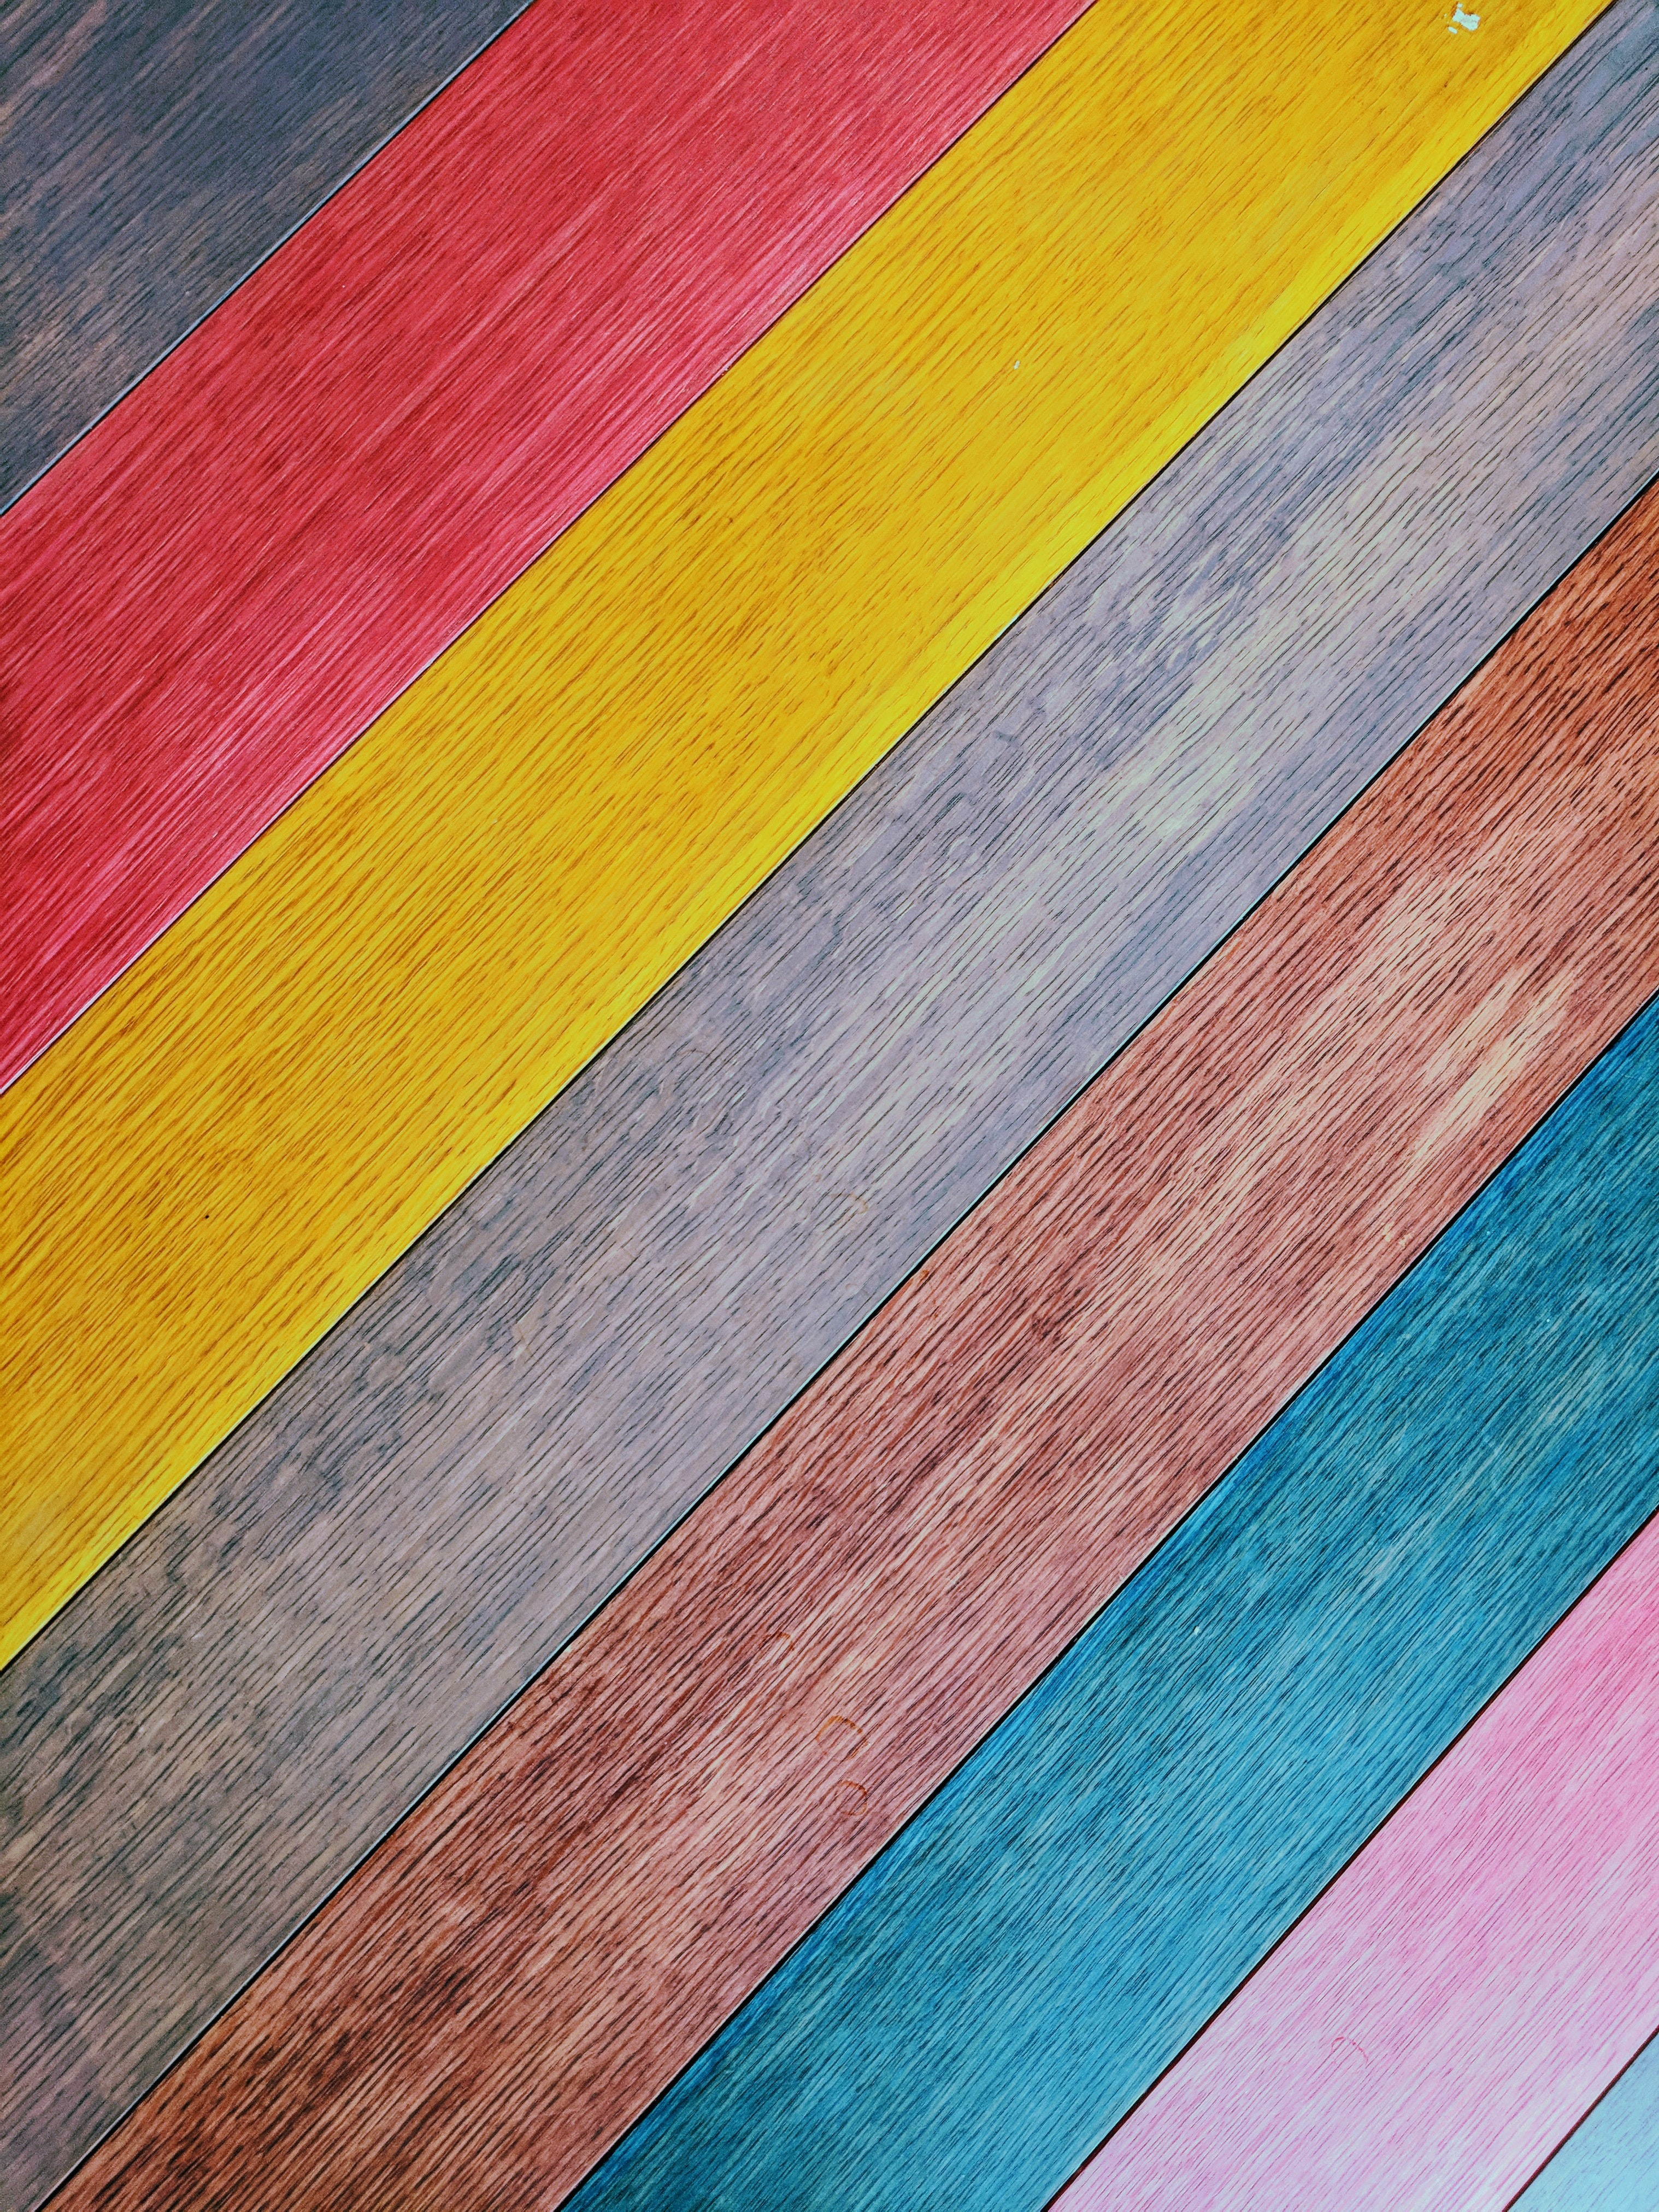 multicolored wooden surface